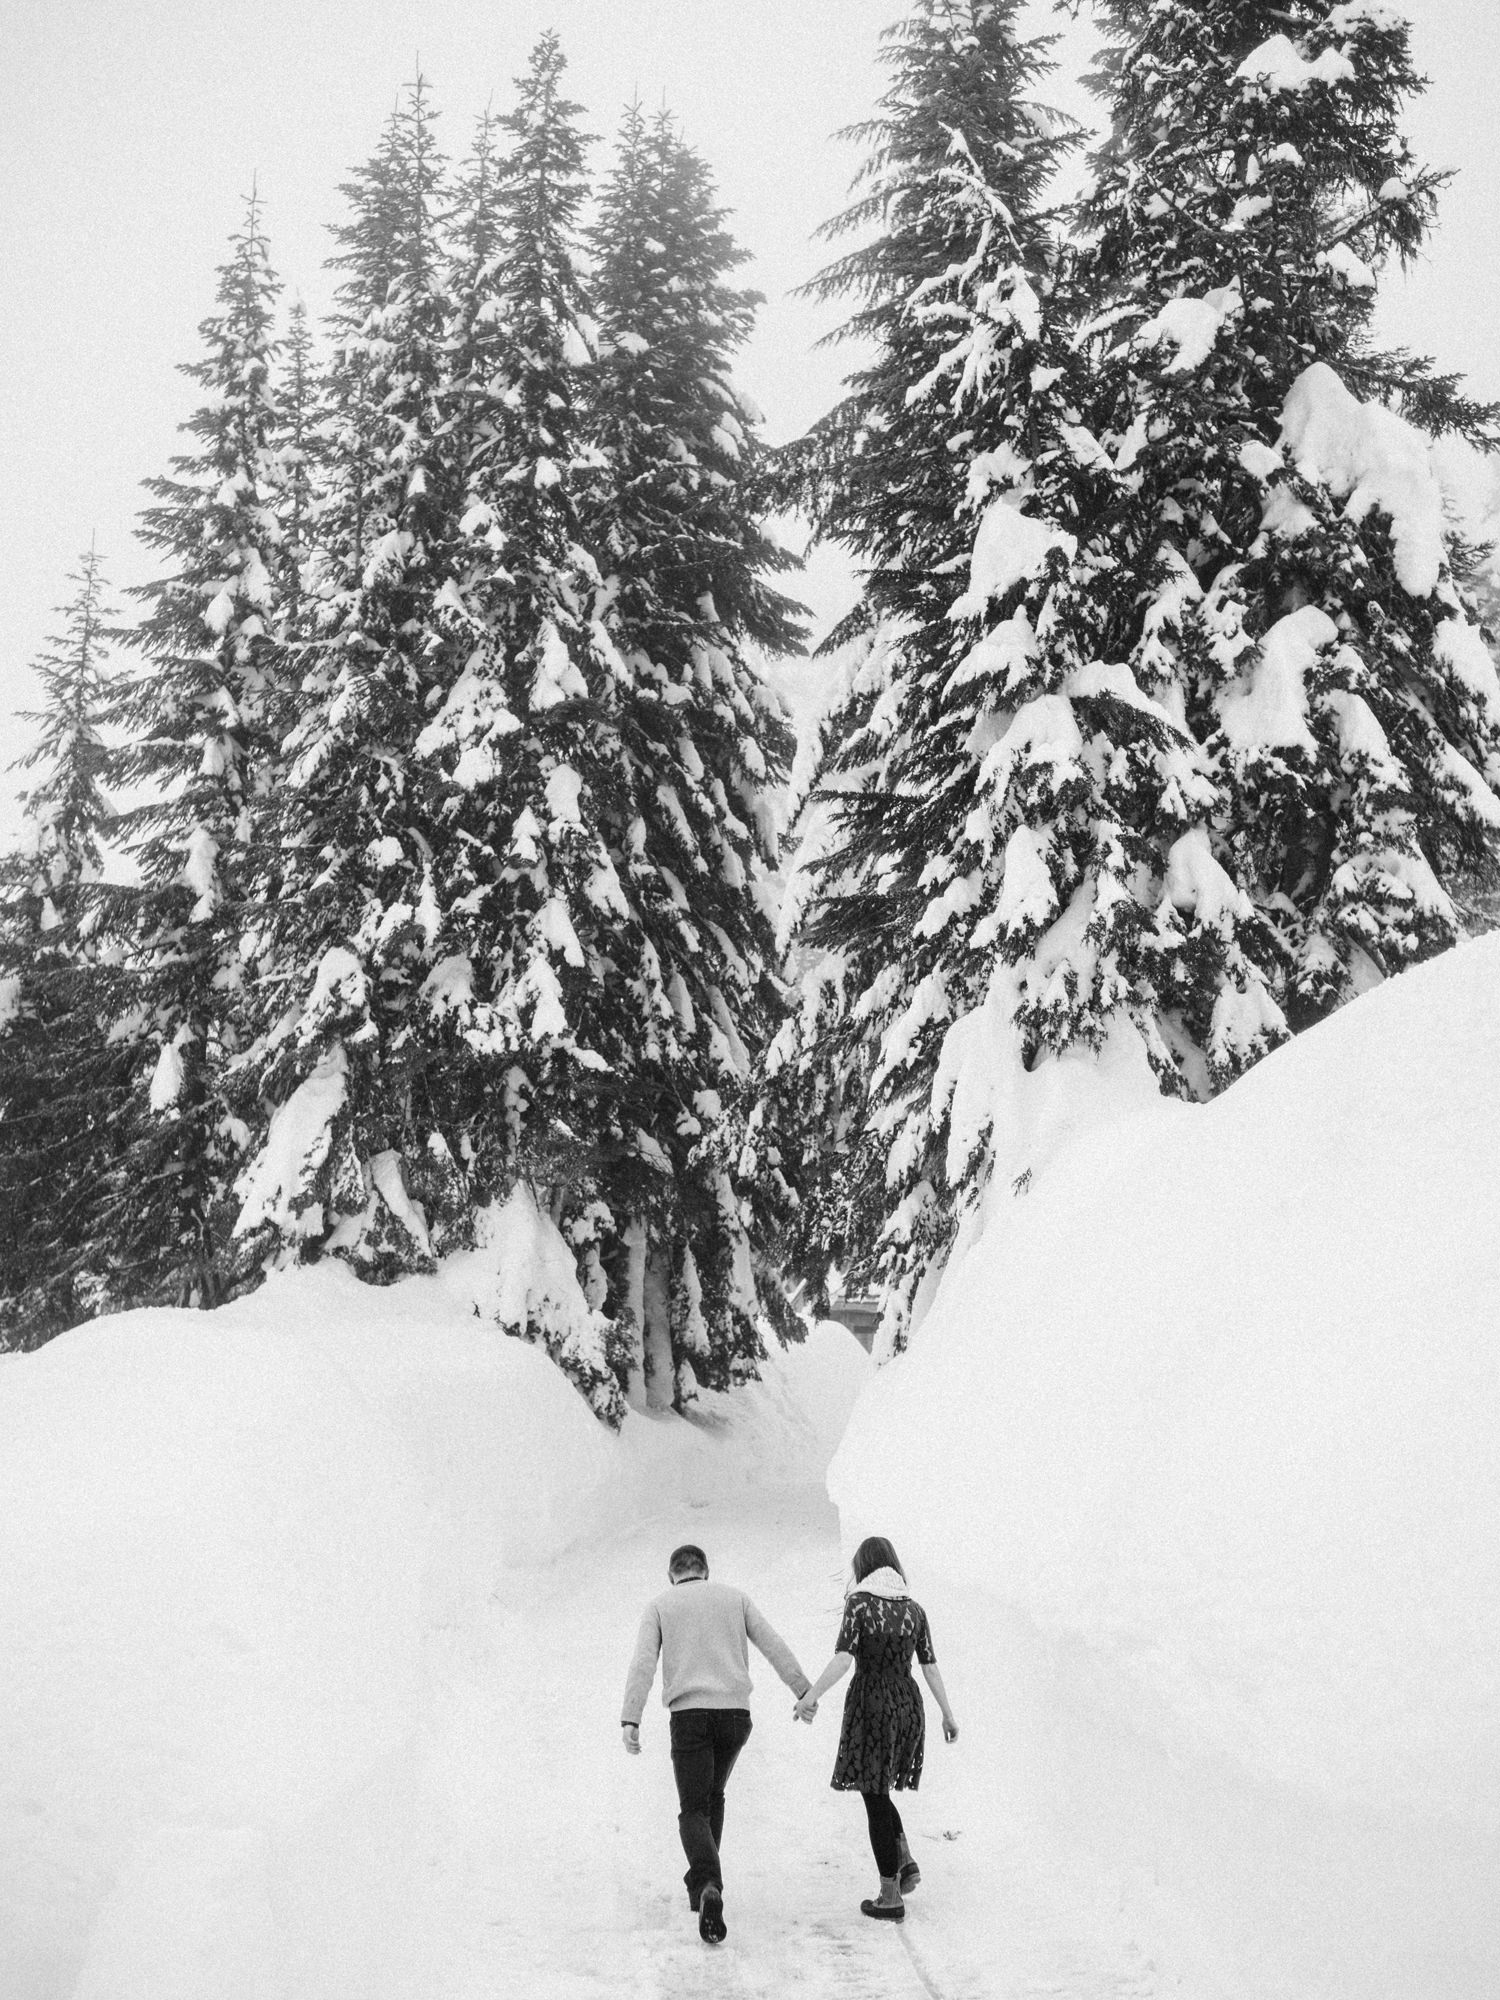 034-snoqualmie-mountain-engagement-session-seattle-film-wedding-photographer-ryan-flynn.jpg